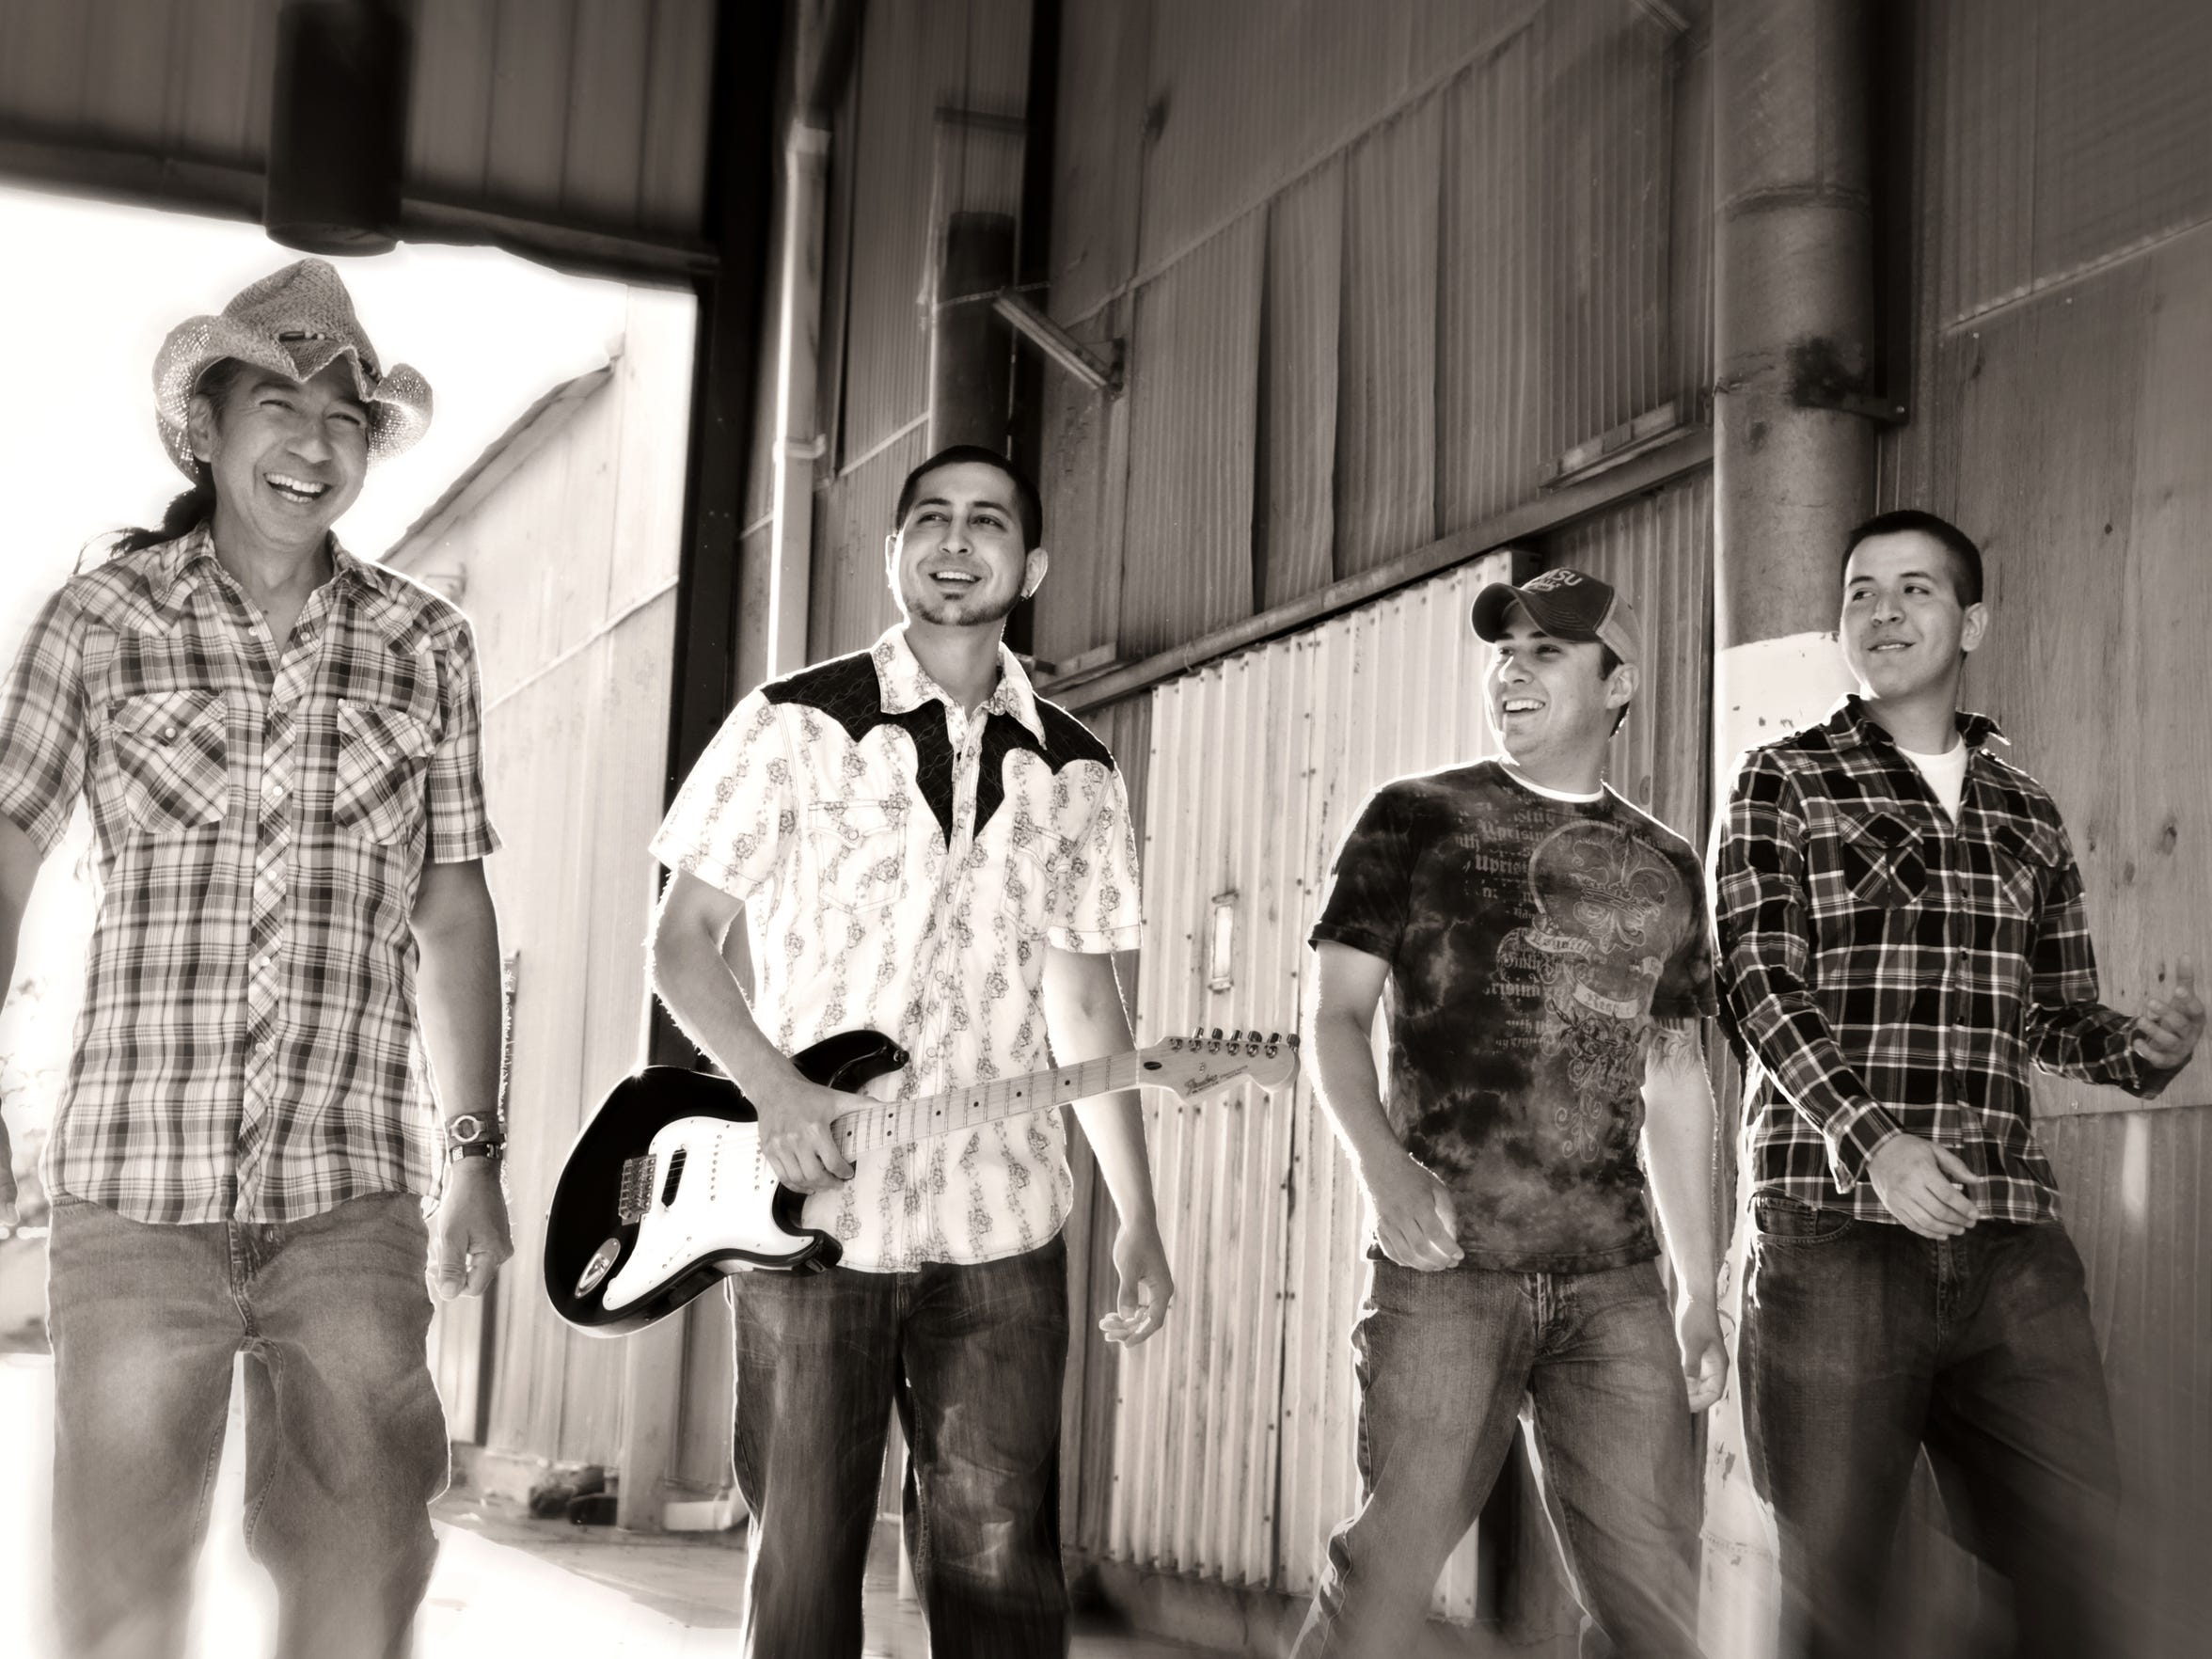 Crooked Beaver Creek is one of six groups set to perform live at the SNM State Fair. The group opens Friday for headliner the Casey Donahew Band.